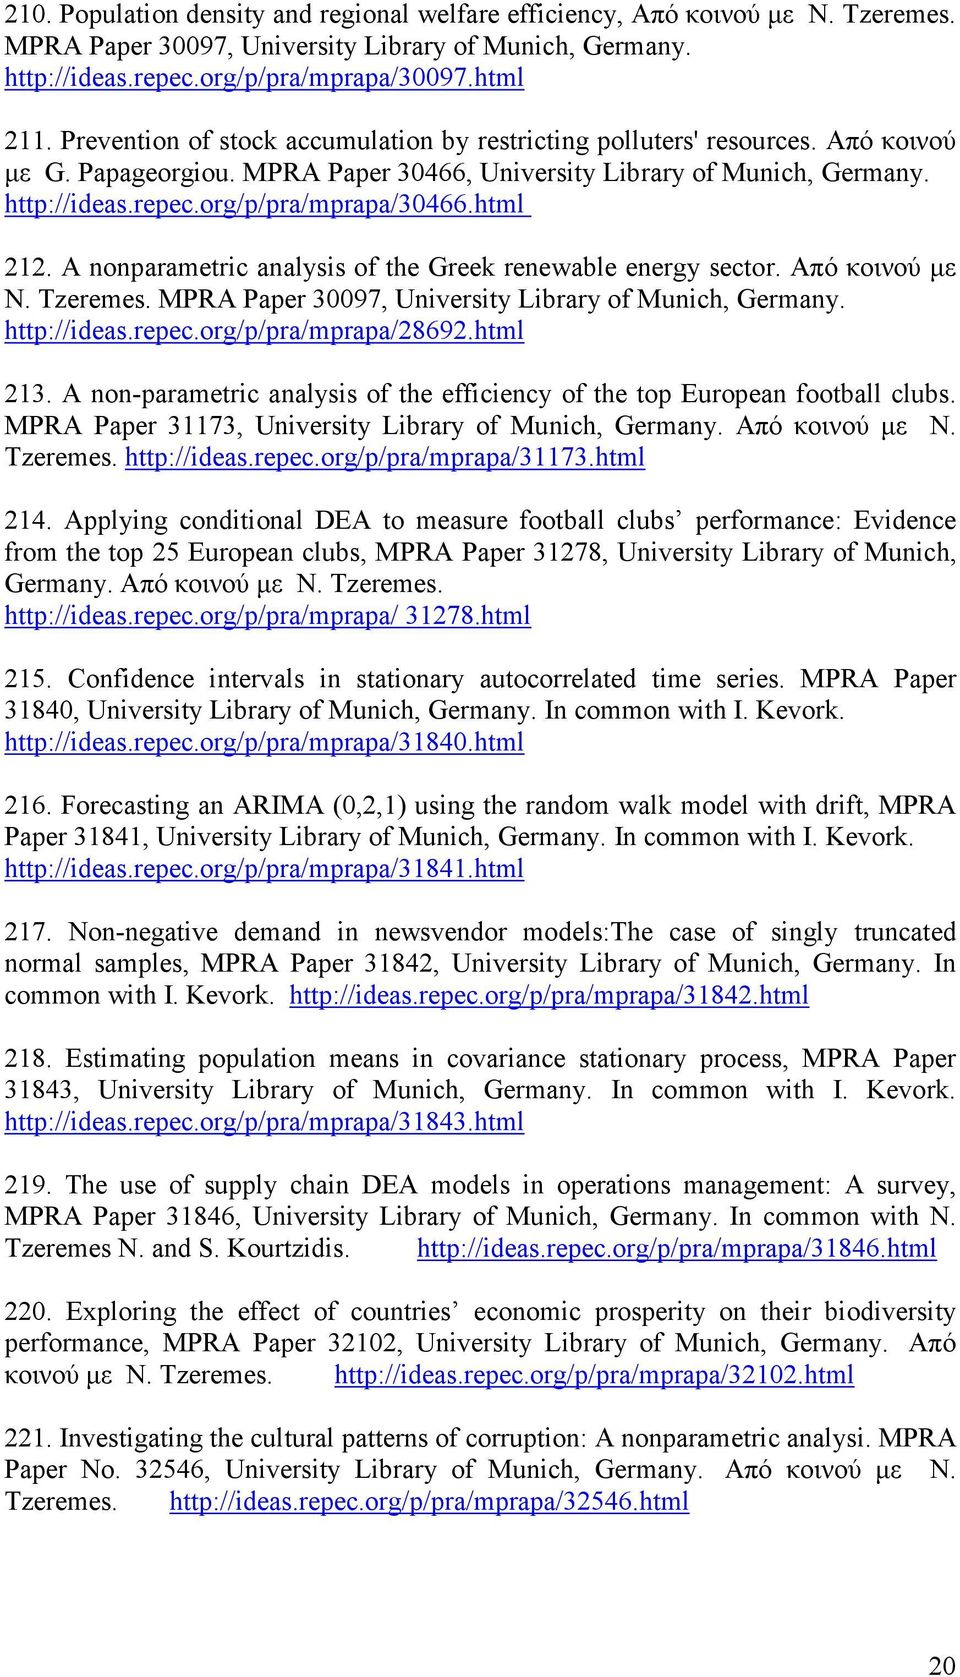 html 212. A nonparametric analysis of the Greek renewable energy sector. Από κοινού µε N. Tzeremes. MPRA Paper 30097, University Library of Munich, Germany. http://ideas.repec.org/p/pra/mprapa/28692.